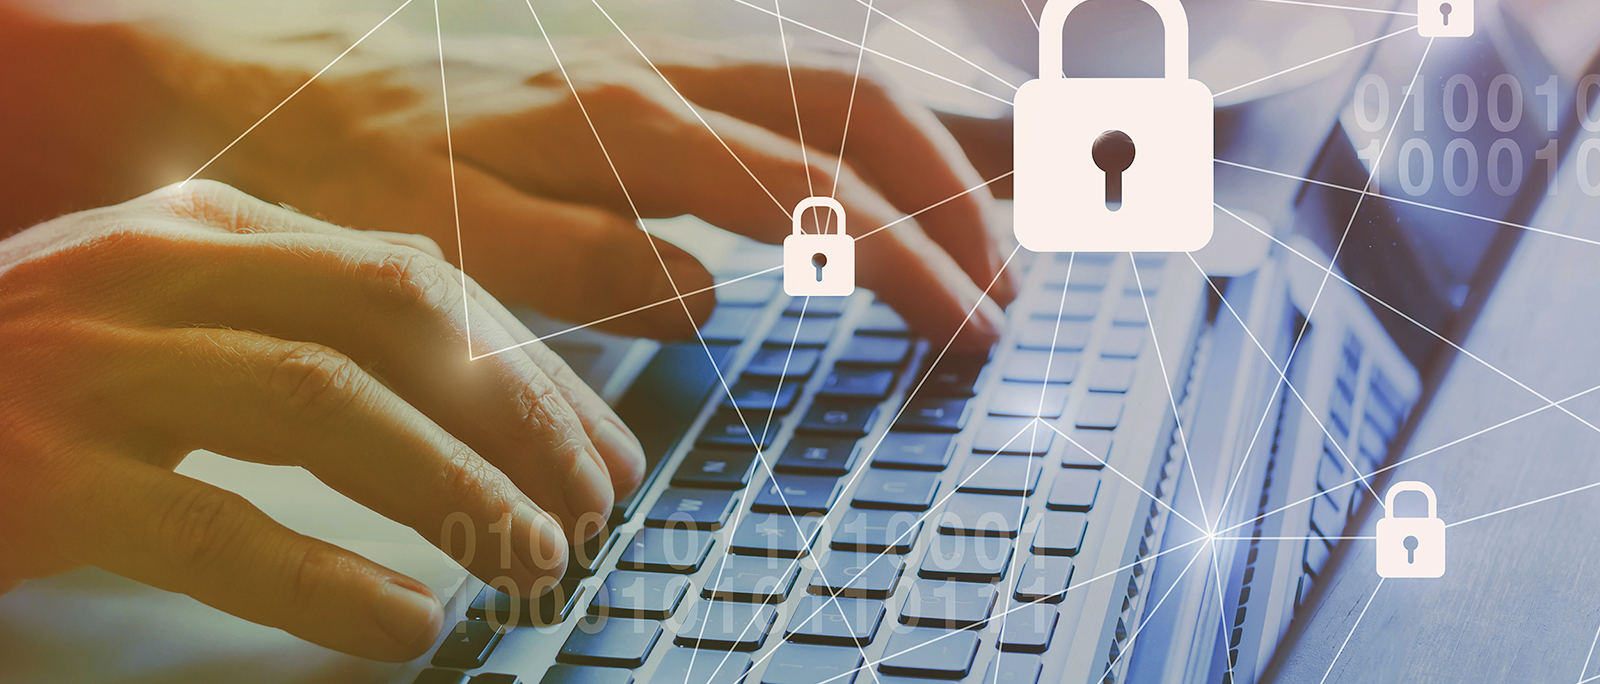 A Guide to Managing Cybersecurity Risks